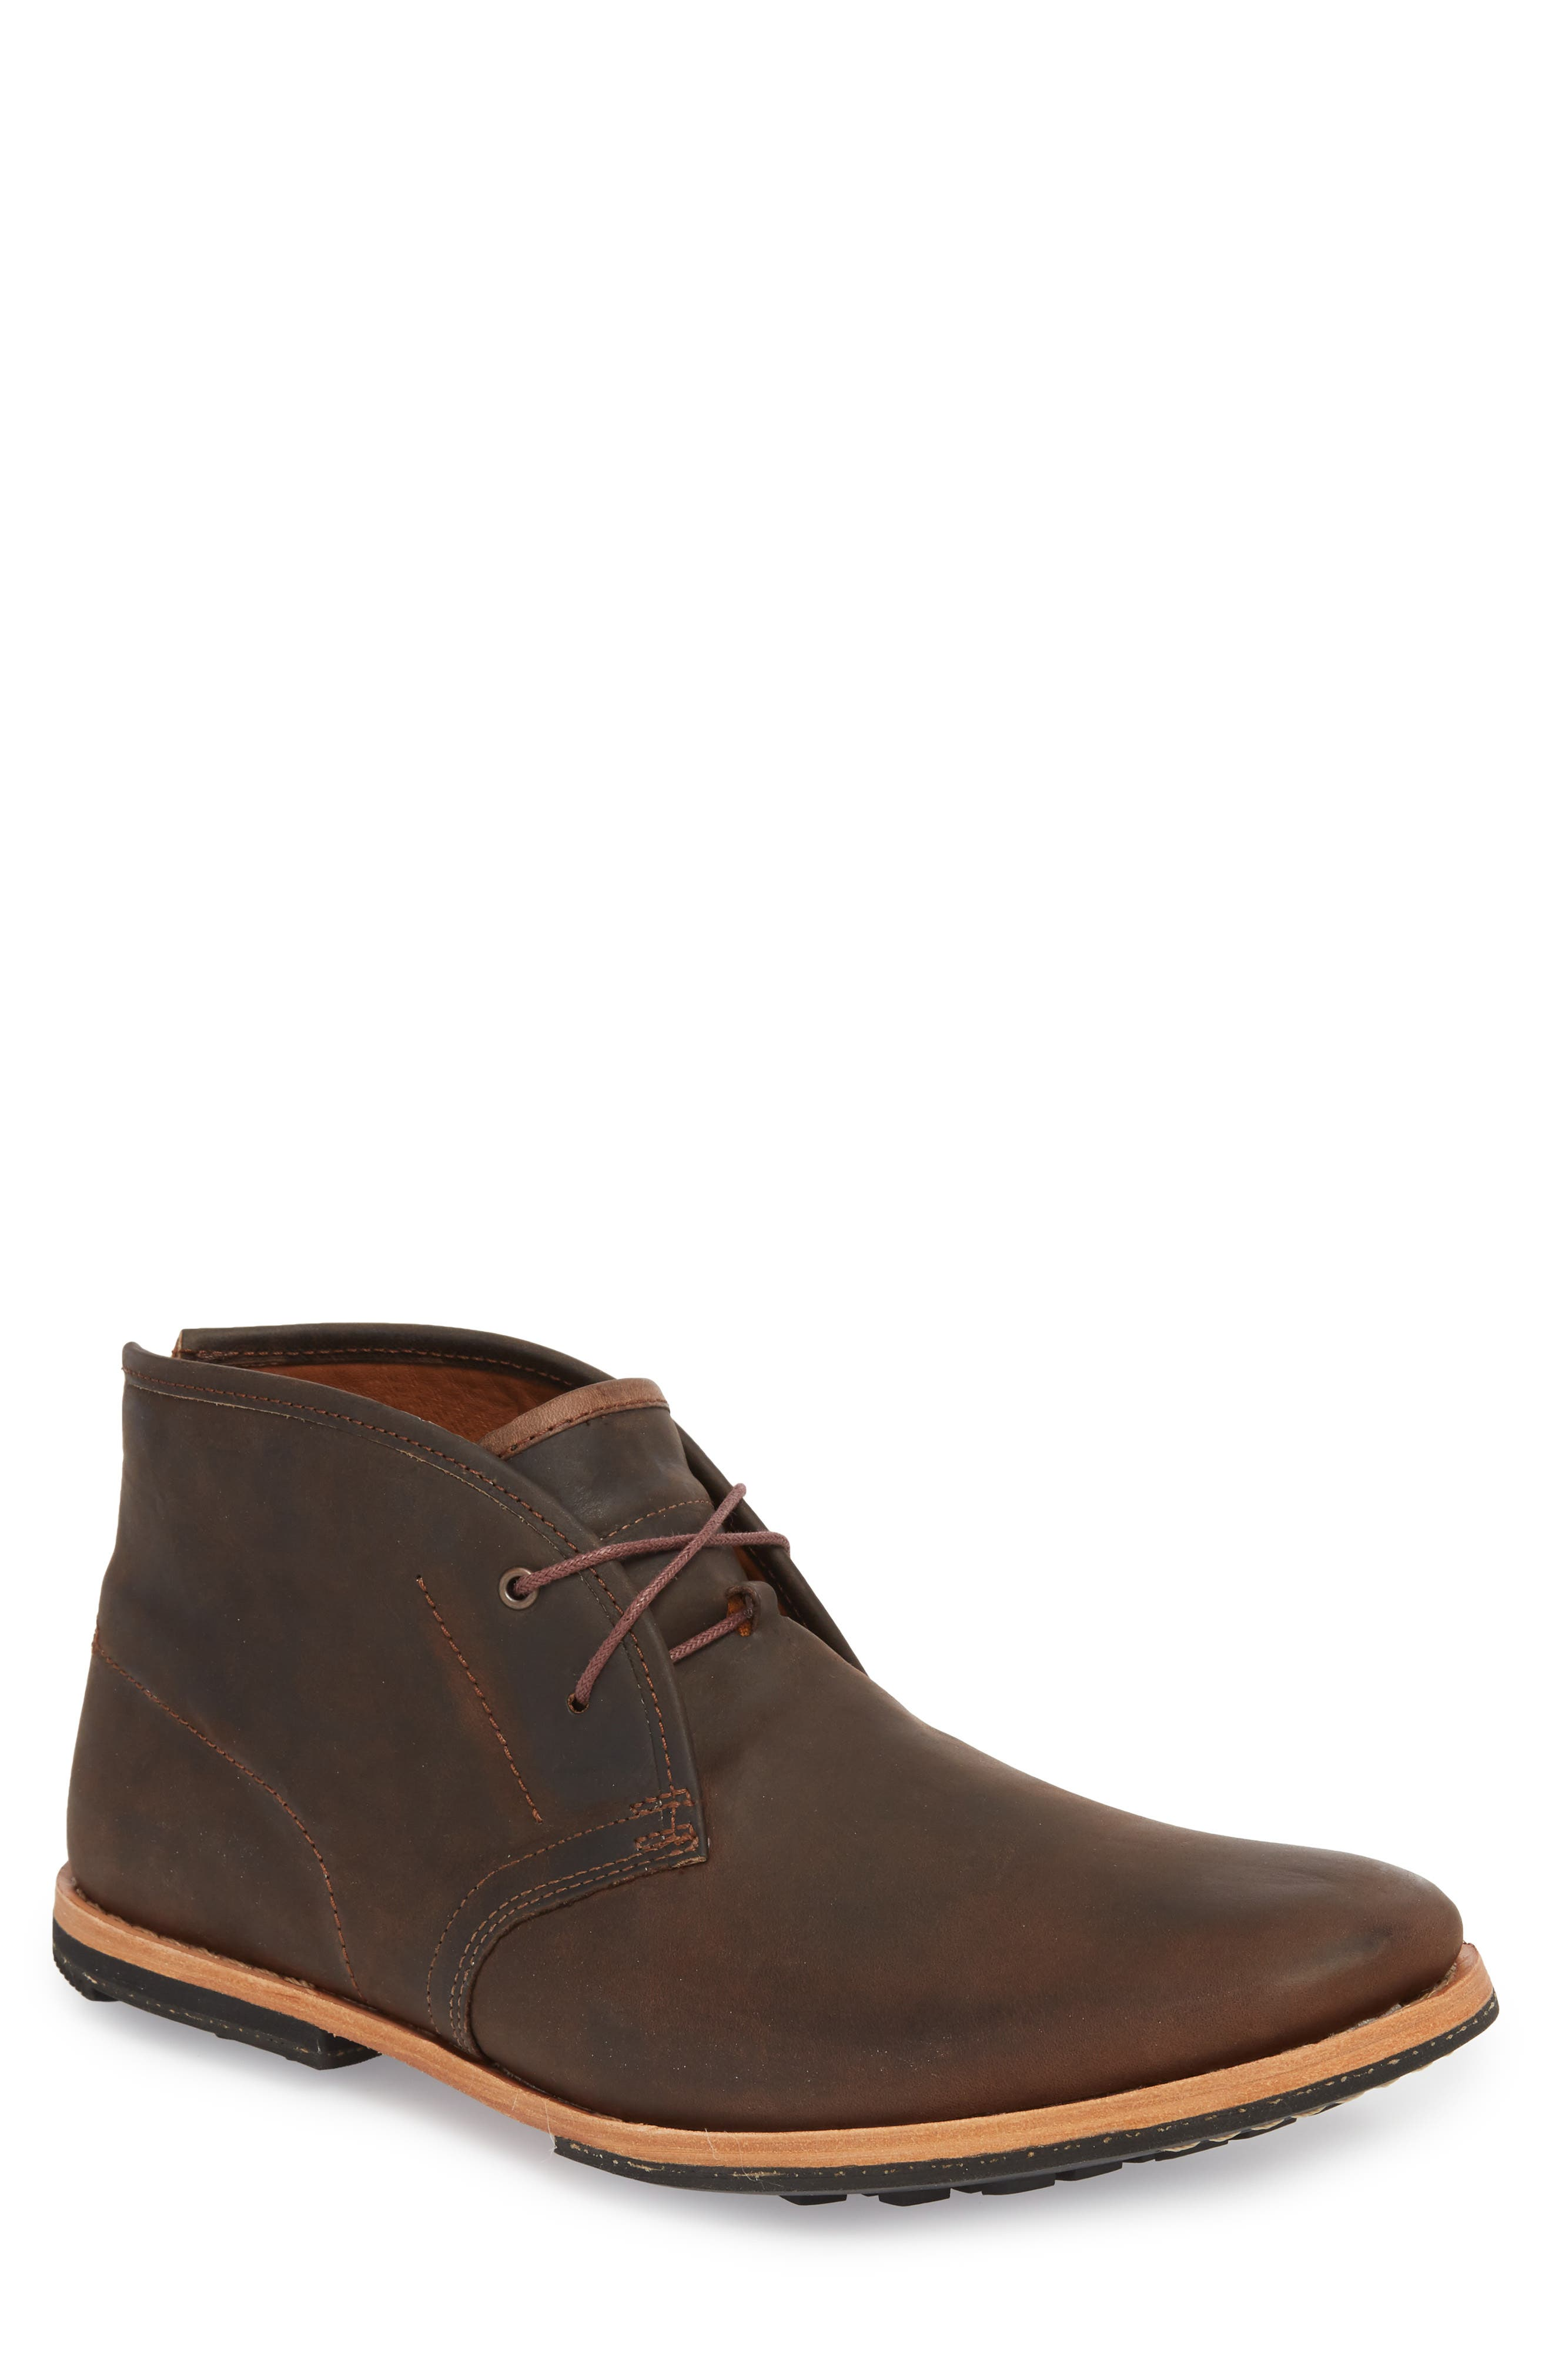 Wodehouse History Chukka Boot,                         Main,                         color, Brown Leather